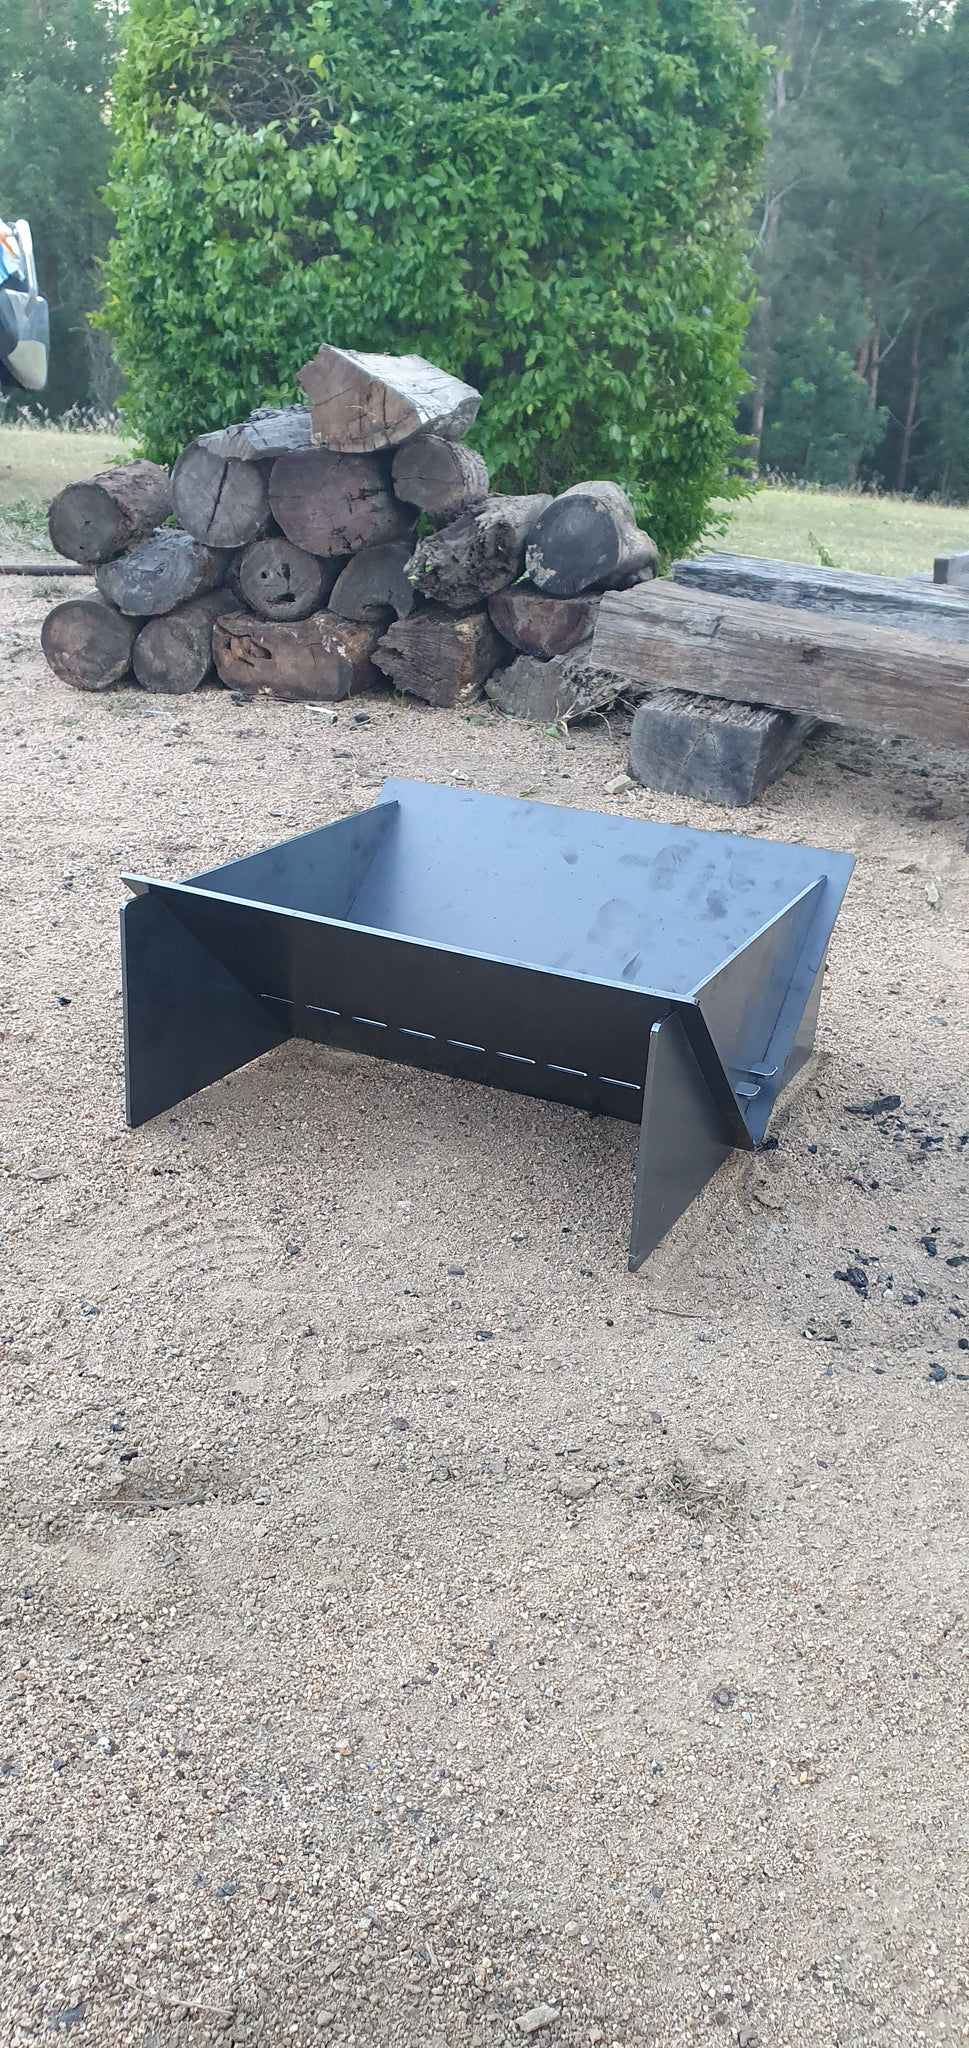 collapsible camping fire pits